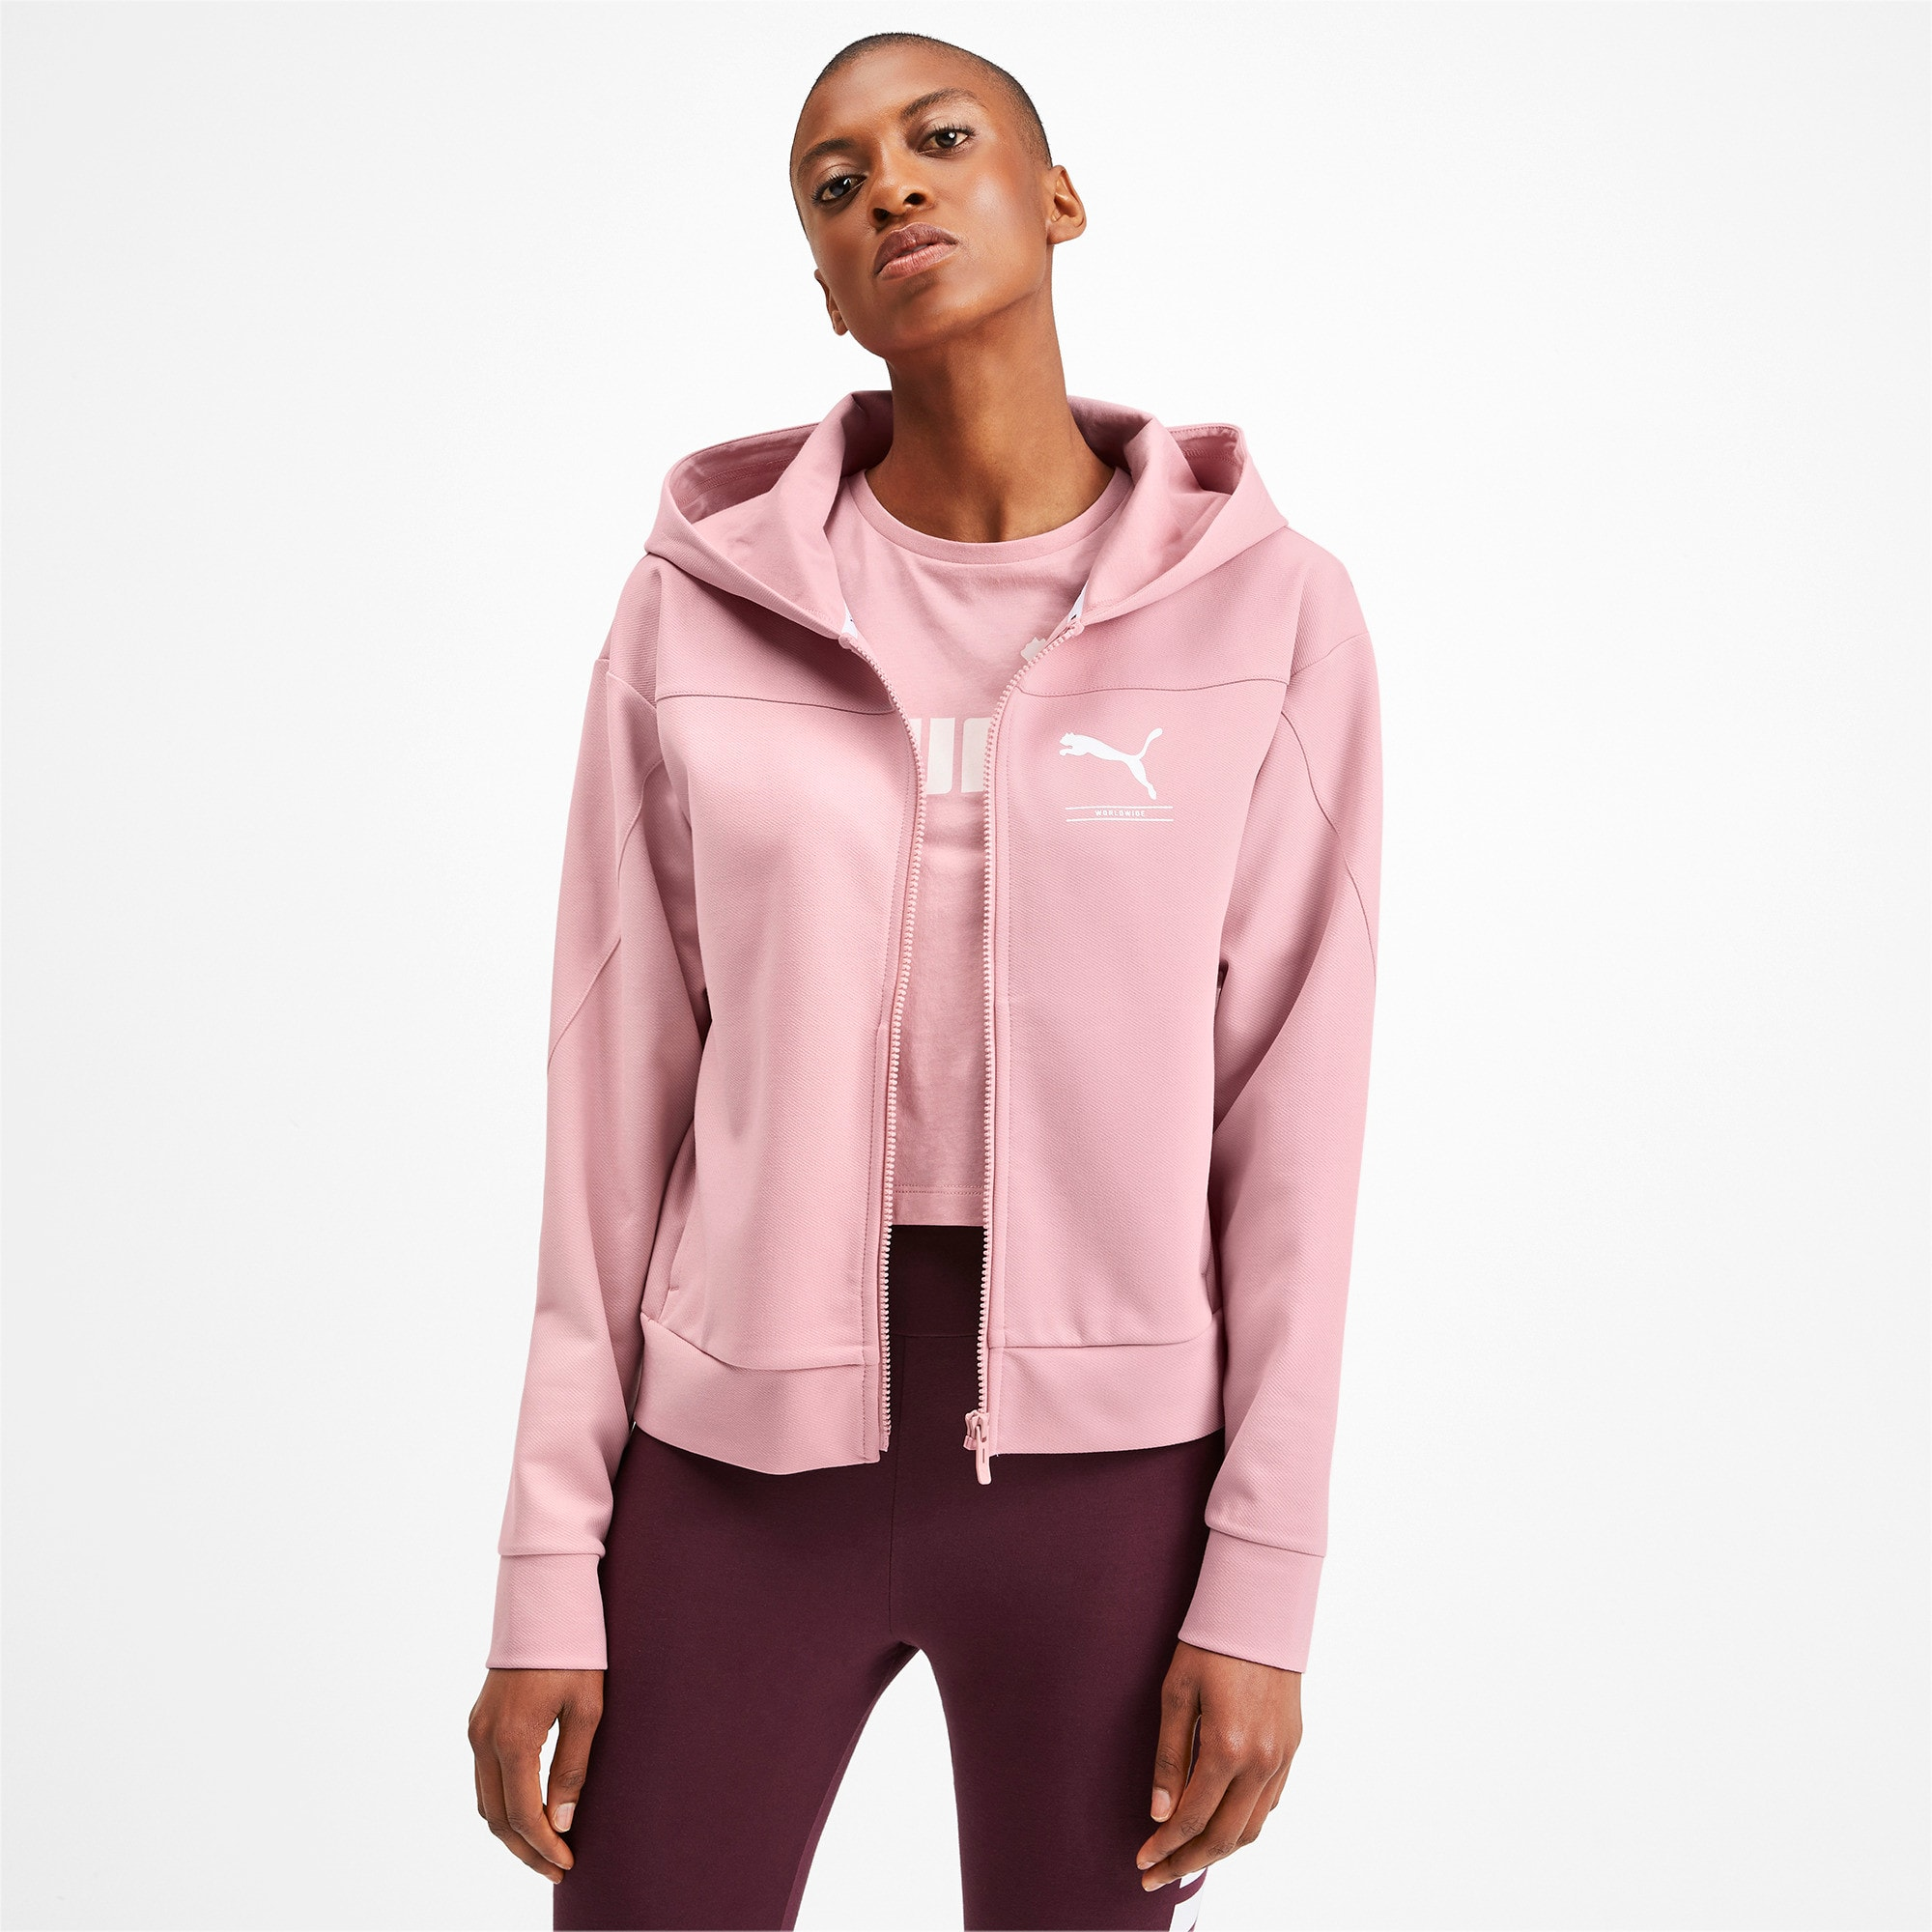 Thumbnail 1 of Blouson en sweat à capuche NU-TILITY pour femme, Bridal Rose, medium